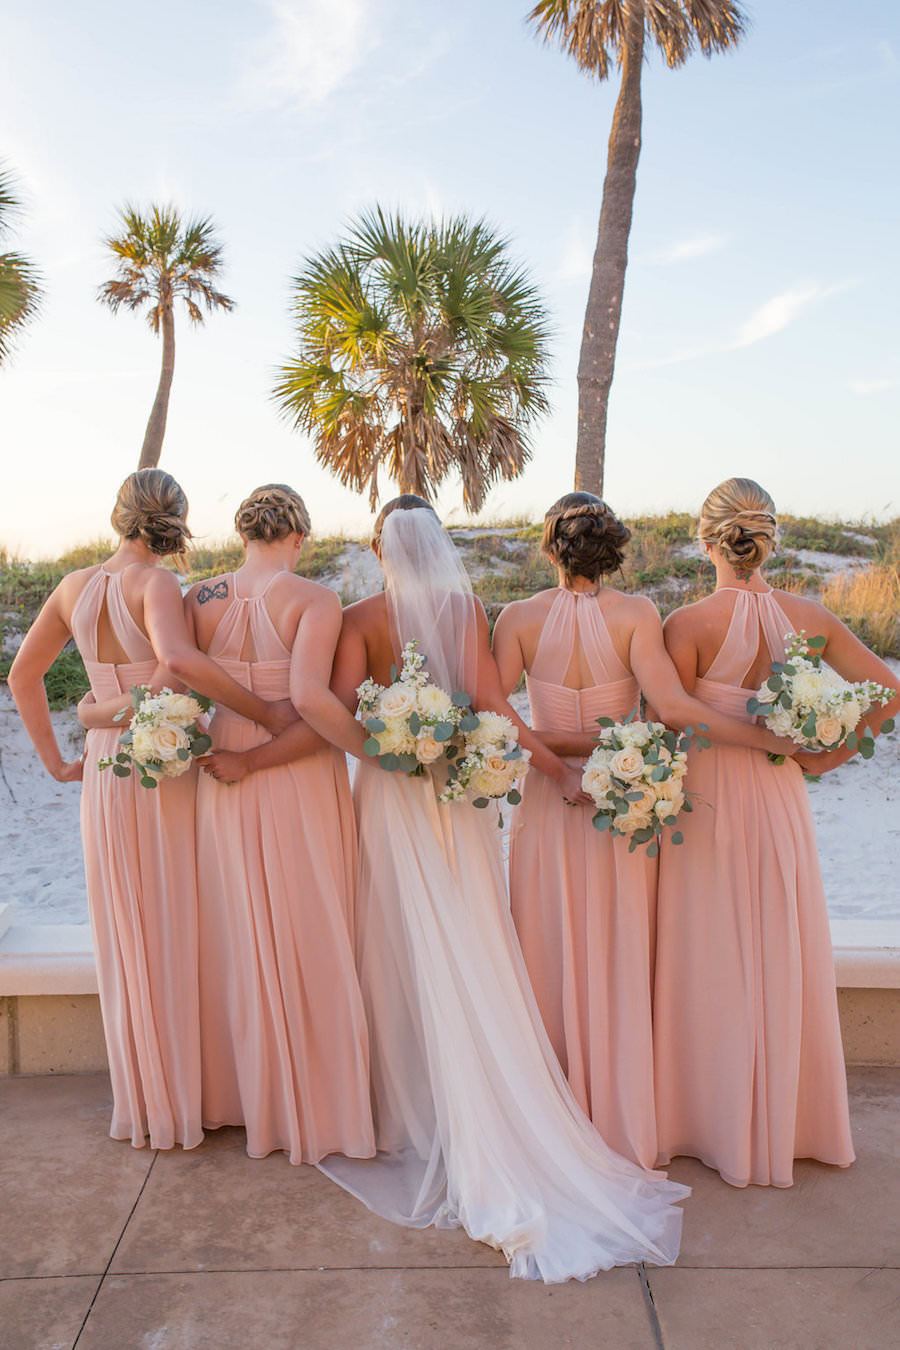 4b68c05afbcc76 Outdoor Beach Bridal Party Portrait with Blush Azazie Bridesmaids Dresses  White Bouquets with Greenery | Clearwater Beach Wedding